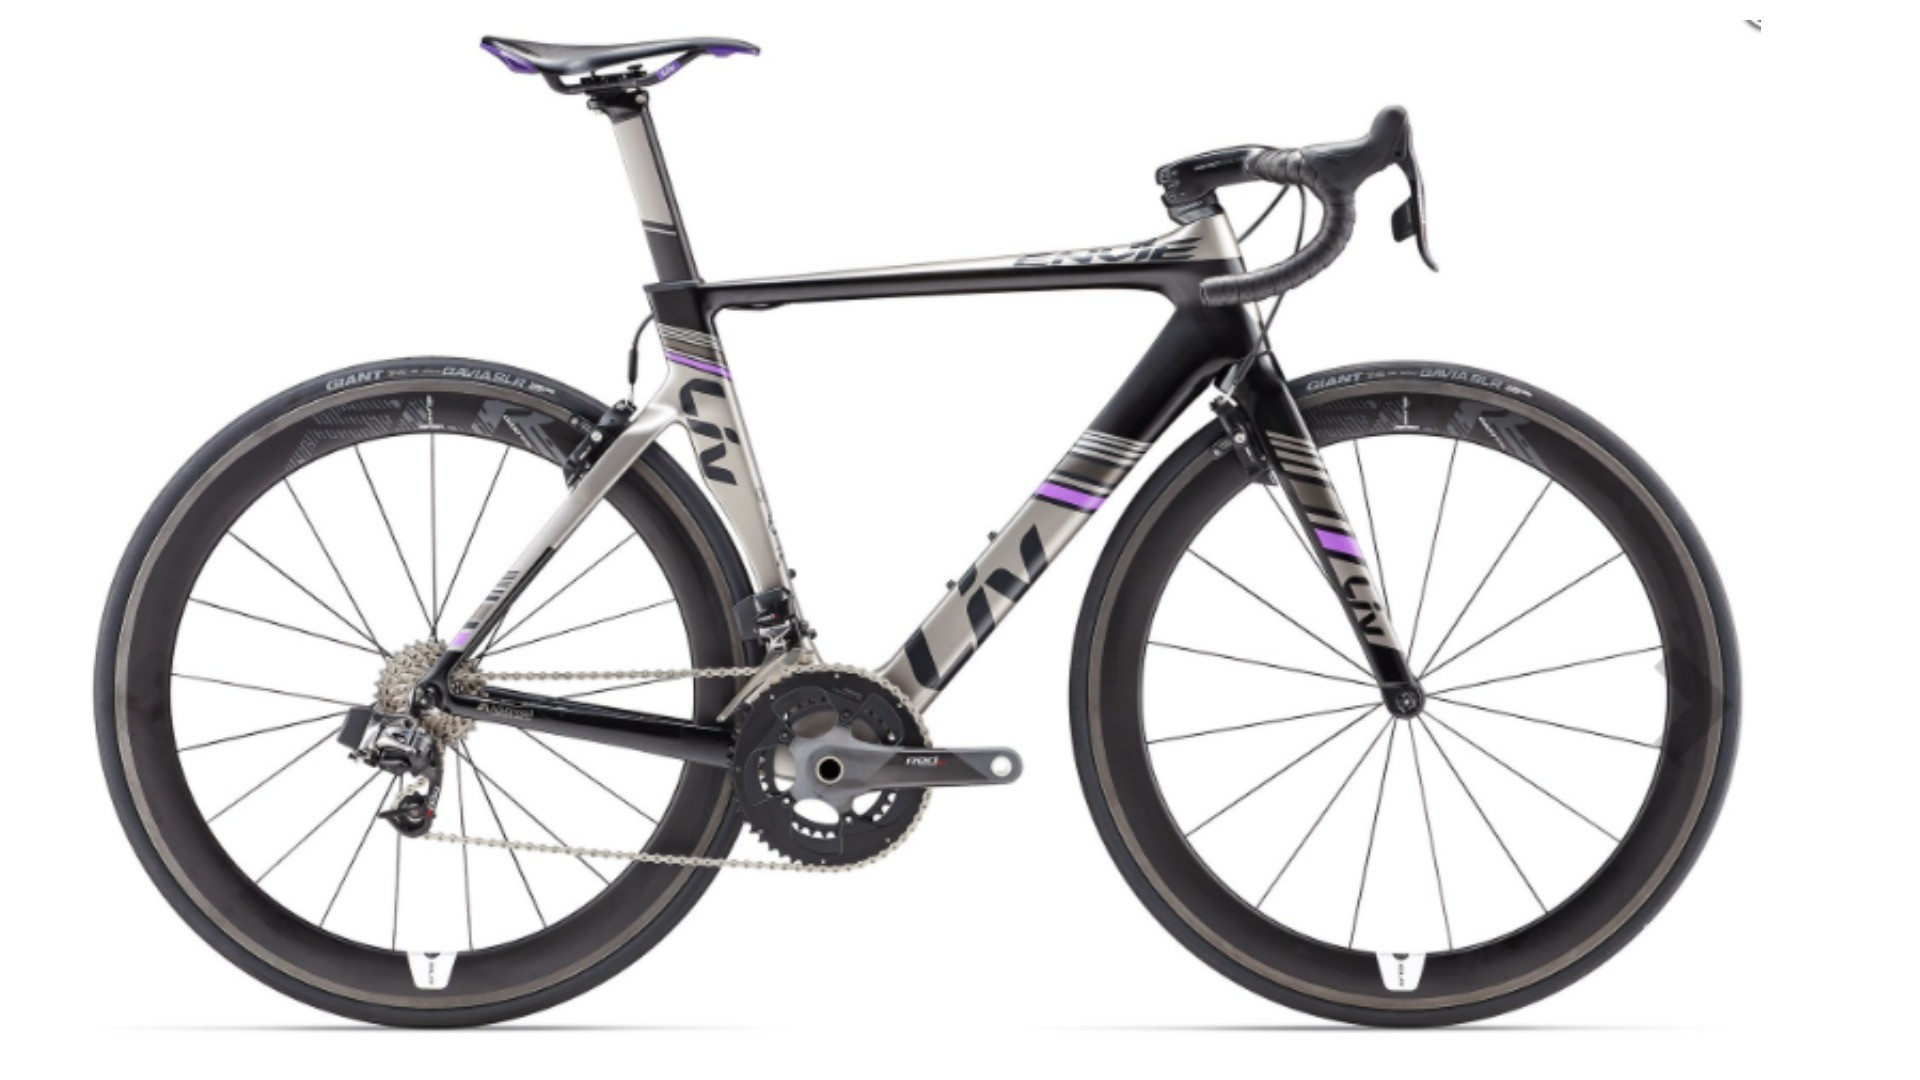 The Envie is an aero road bike designed for speed